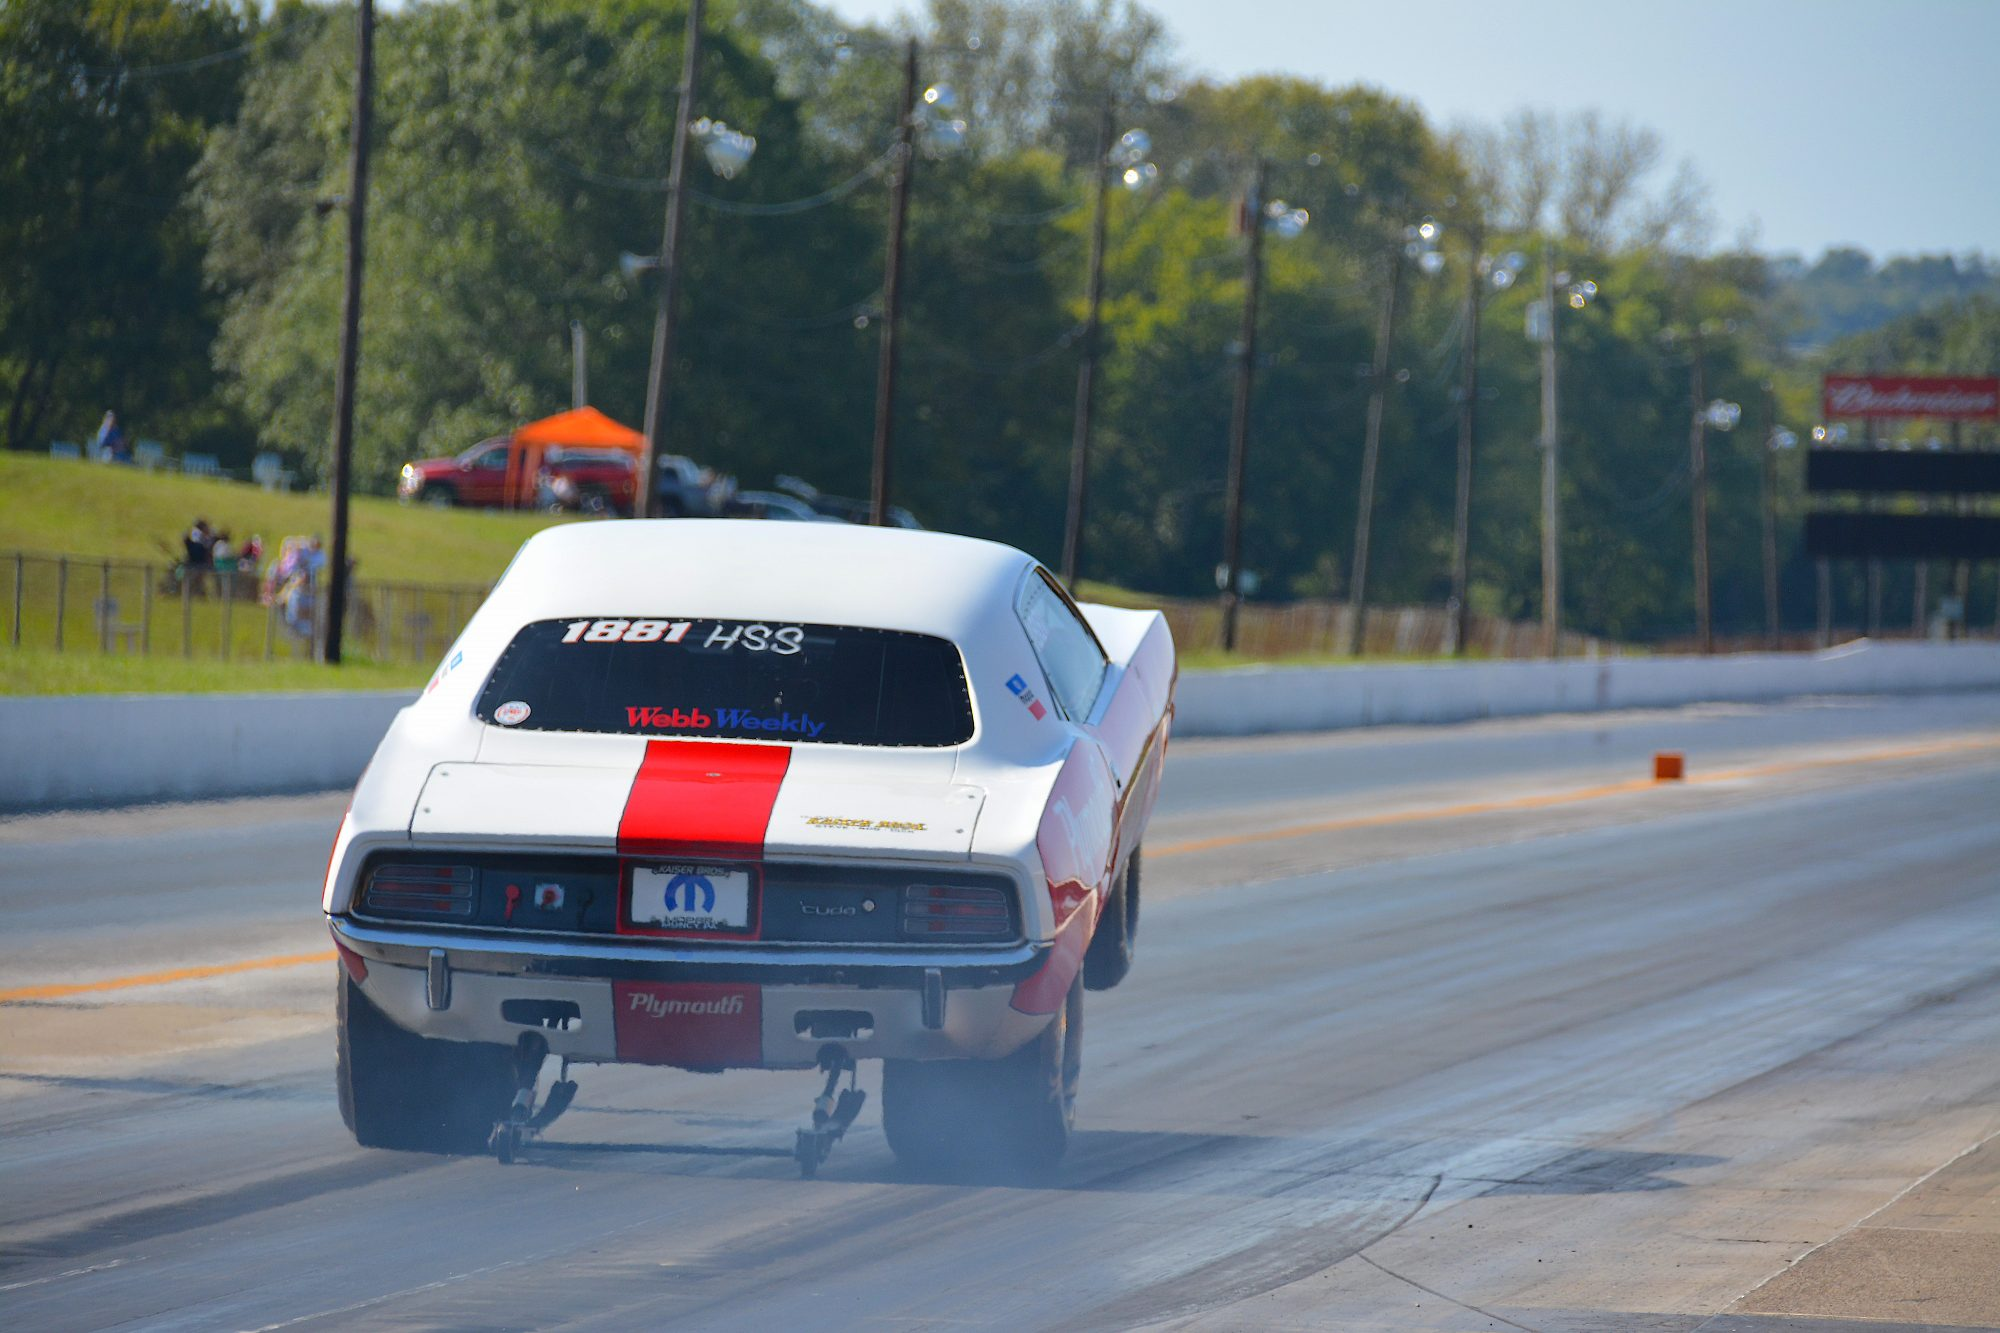 Dodge pulling a wheelie down the track